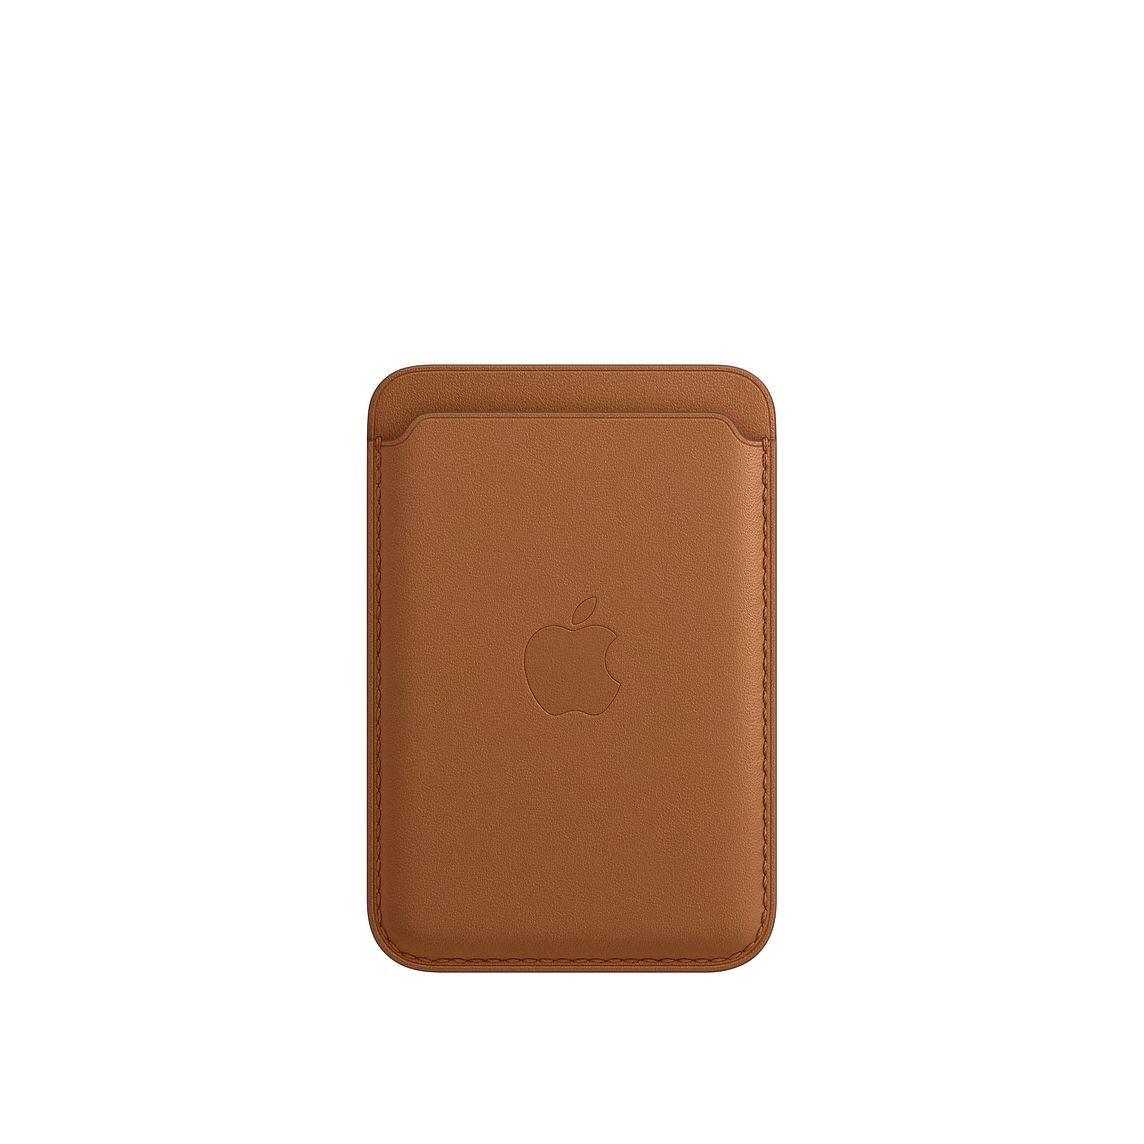 - iPhone Leather Wallet with MagSafe / Café Cuero 1